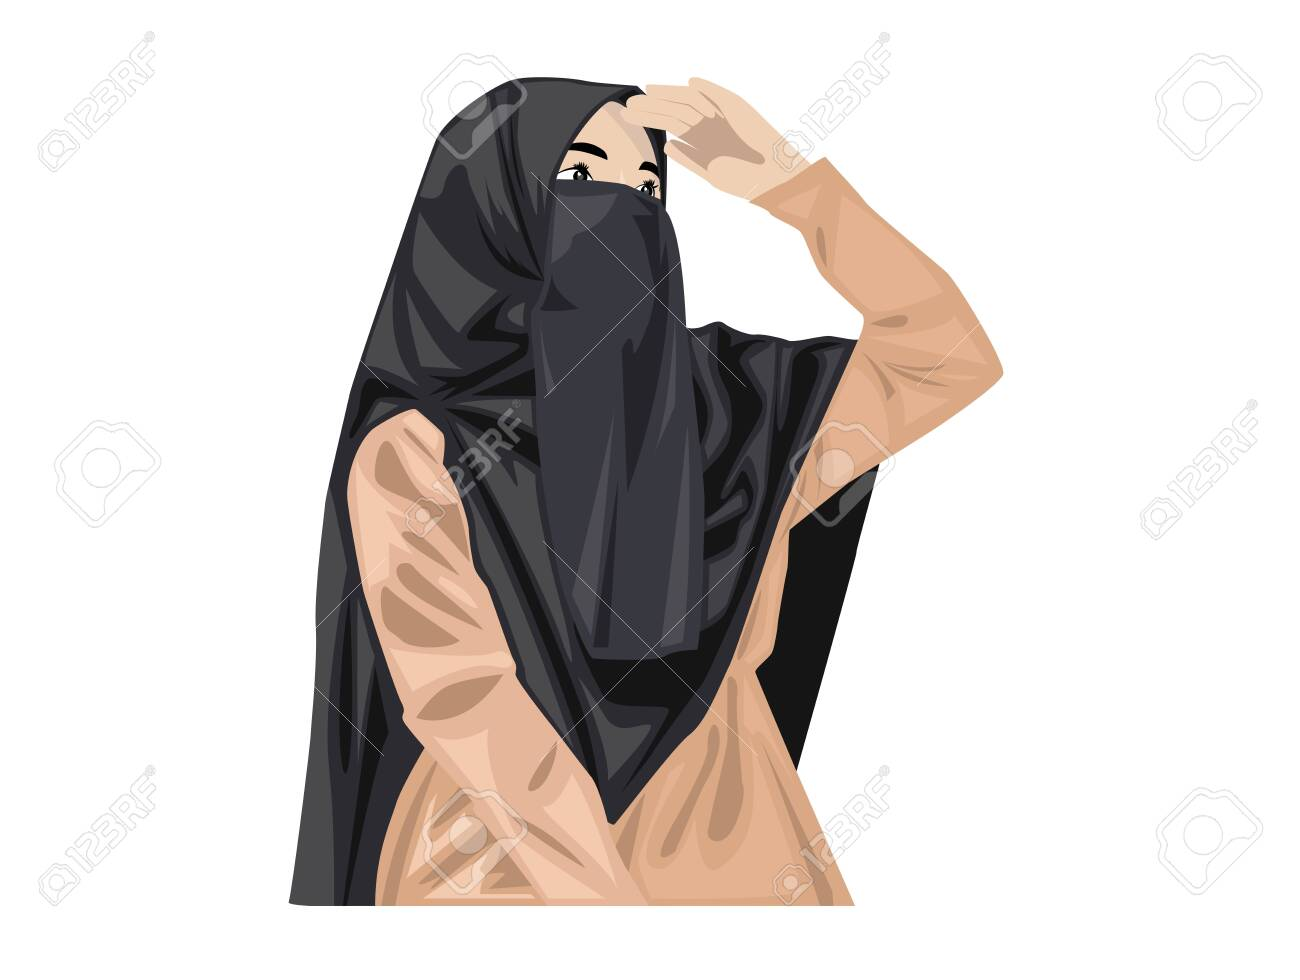 Visit our collection for more cartoons about the burqa. Beautiful Muslim Women With Niqab Cartoon Of Islamic Women In Niqab Royalty Free Cliparts Vectors And Stock Illustration Image 145060701